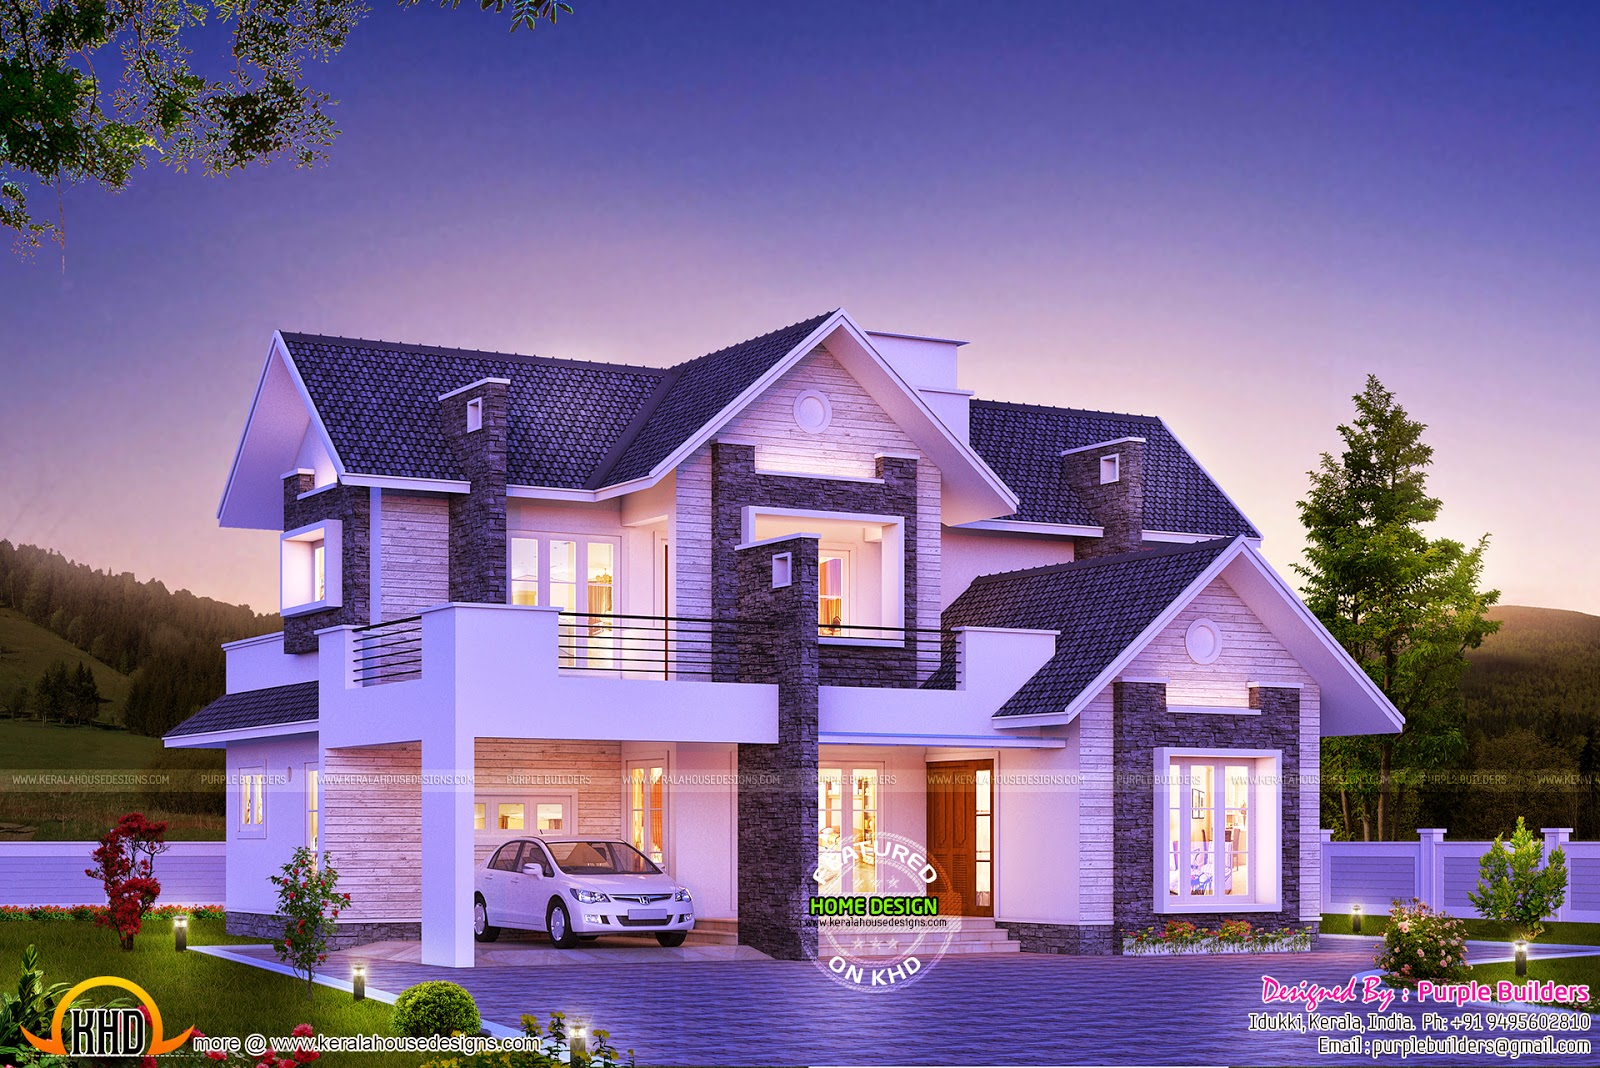 Super dream home kerala home design and floor plans for Design my home